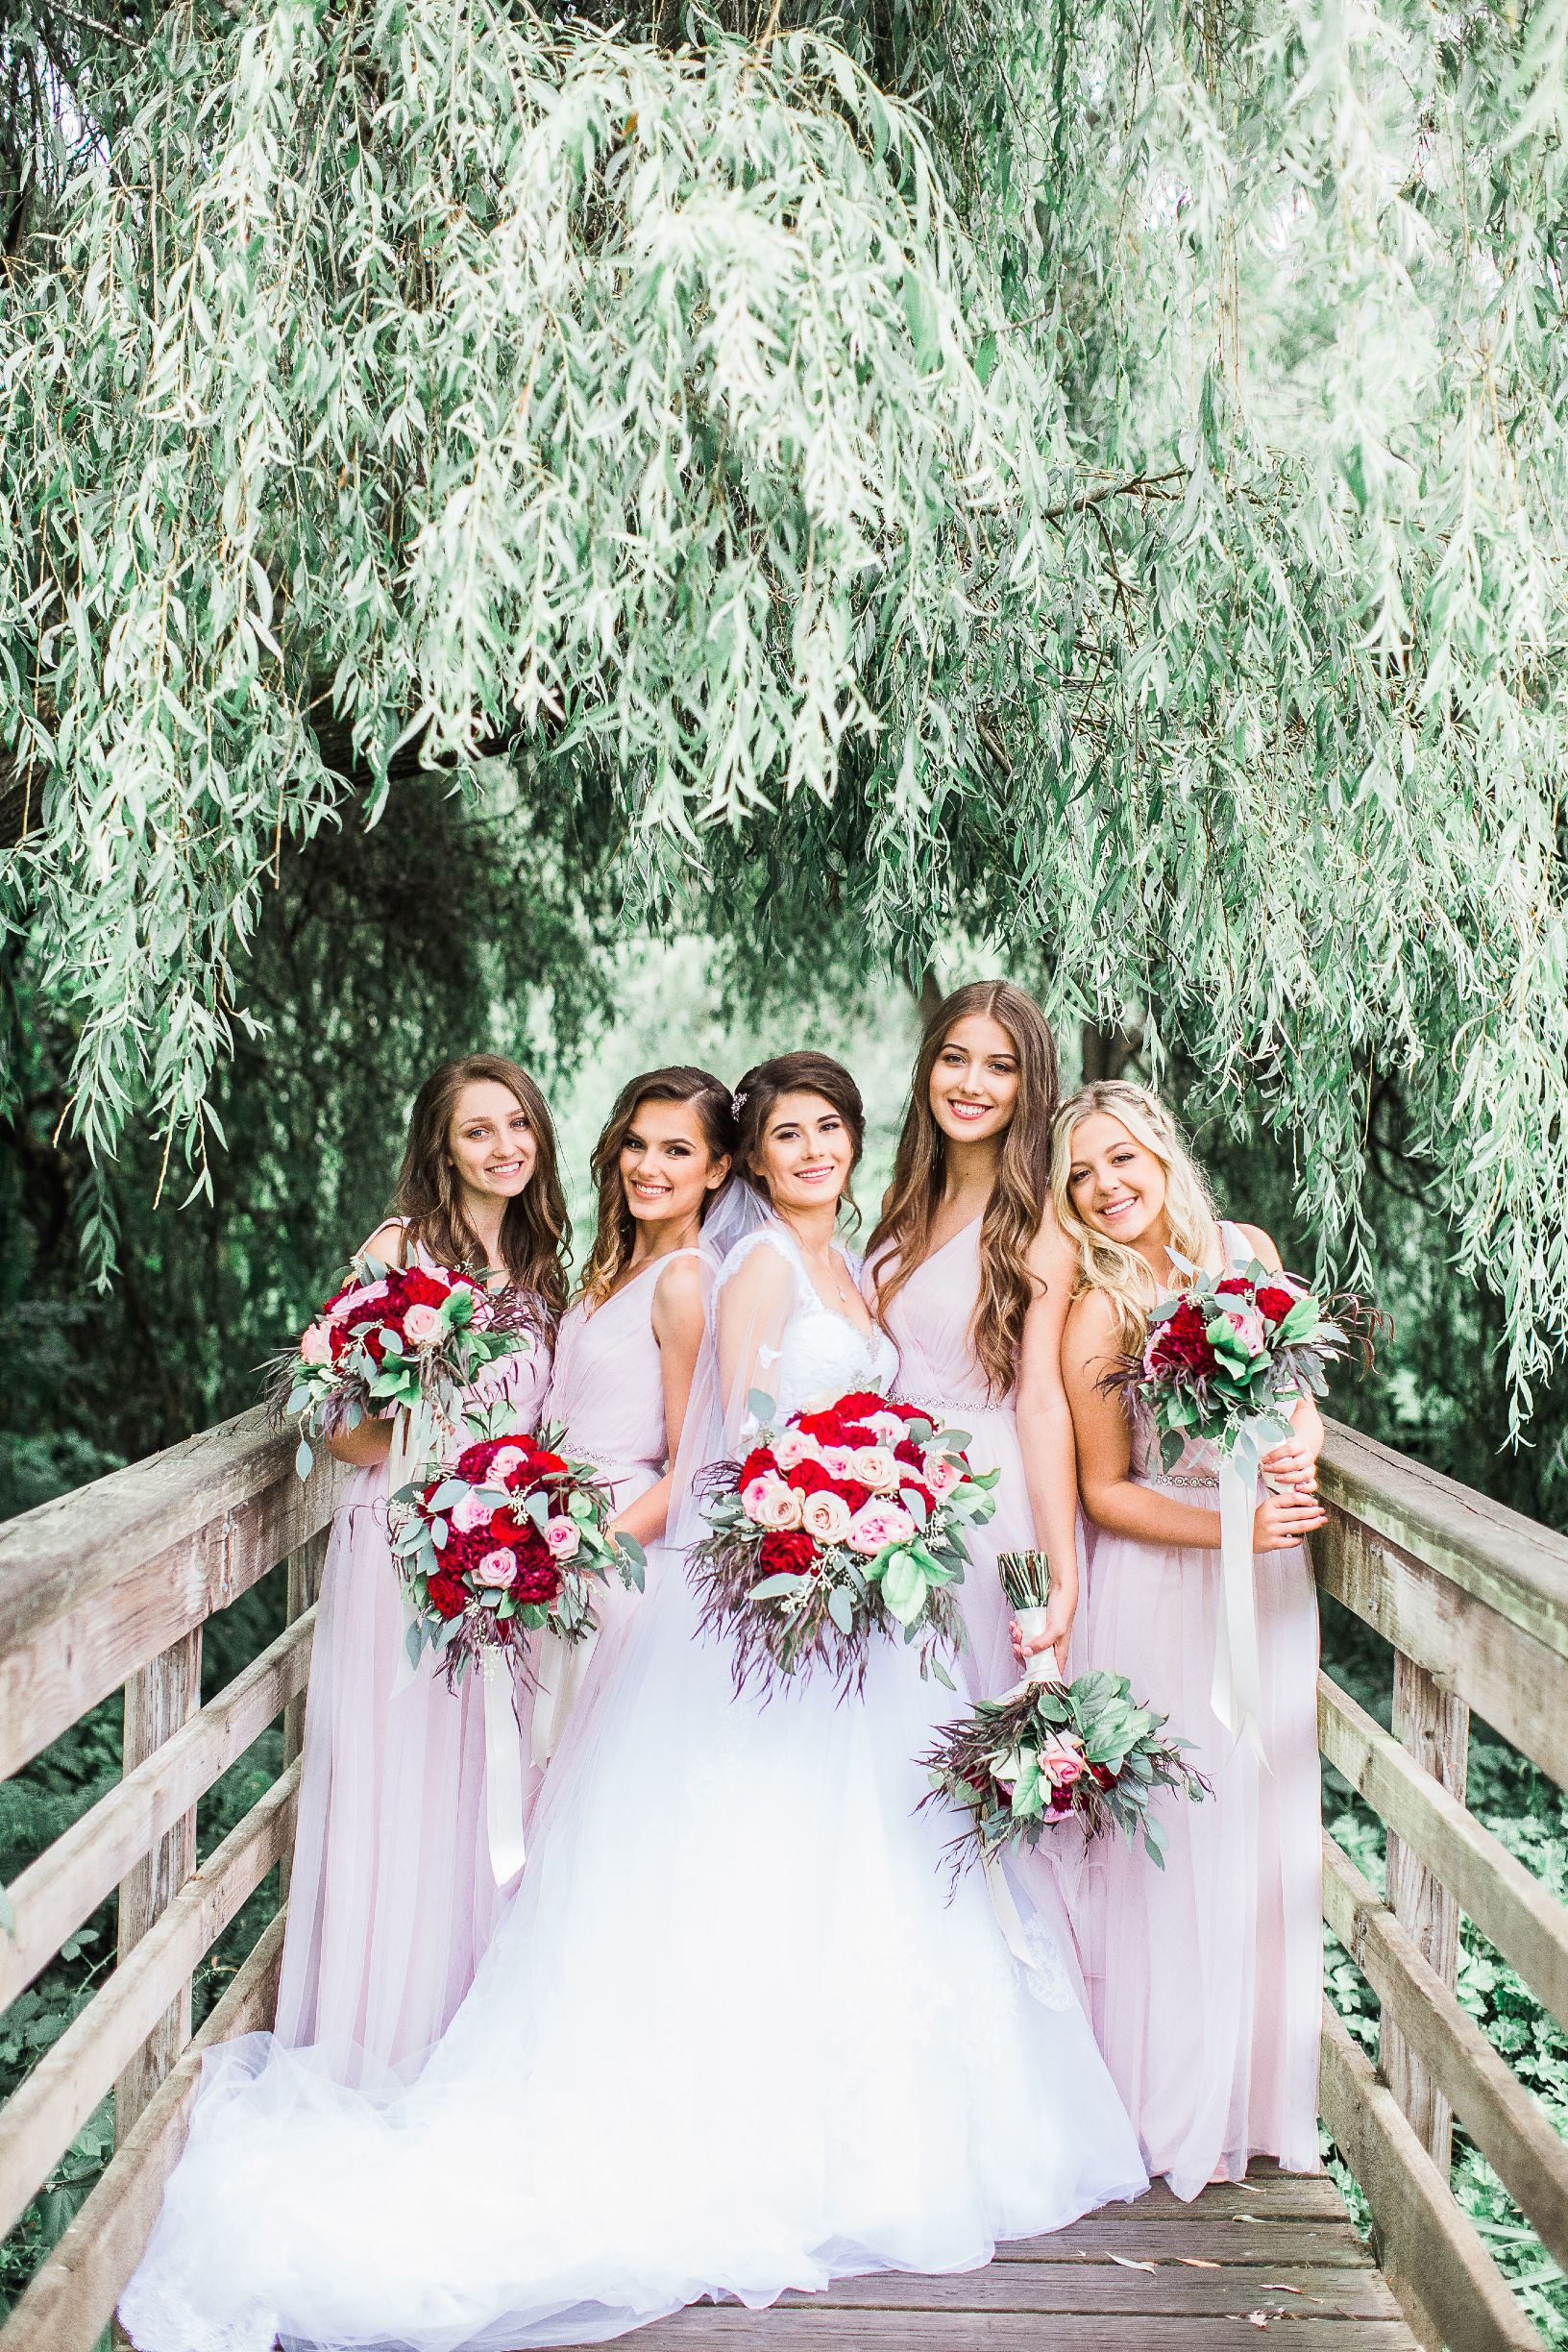 Blush & Burgundy color tones 👑 #pinkandburgundywedding #Bridesmaiddresses #Rosegardenbouquets